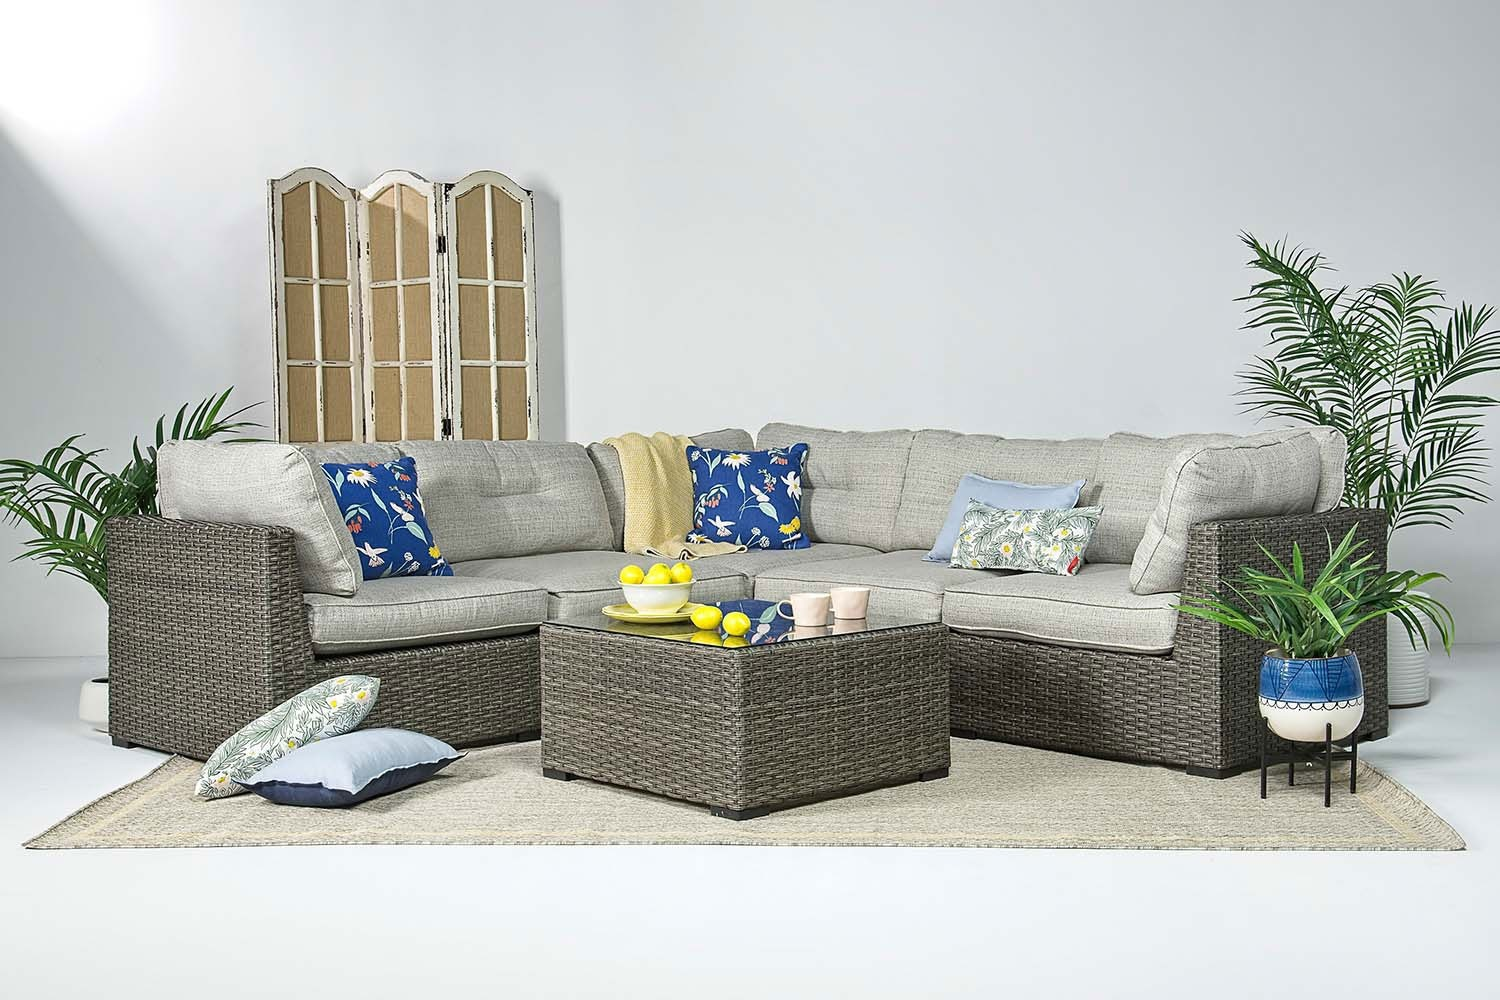 Montauk 5 Piece Patio Sectional | Mor Furniture on 5 Piece Sectional Patio Set id=27113